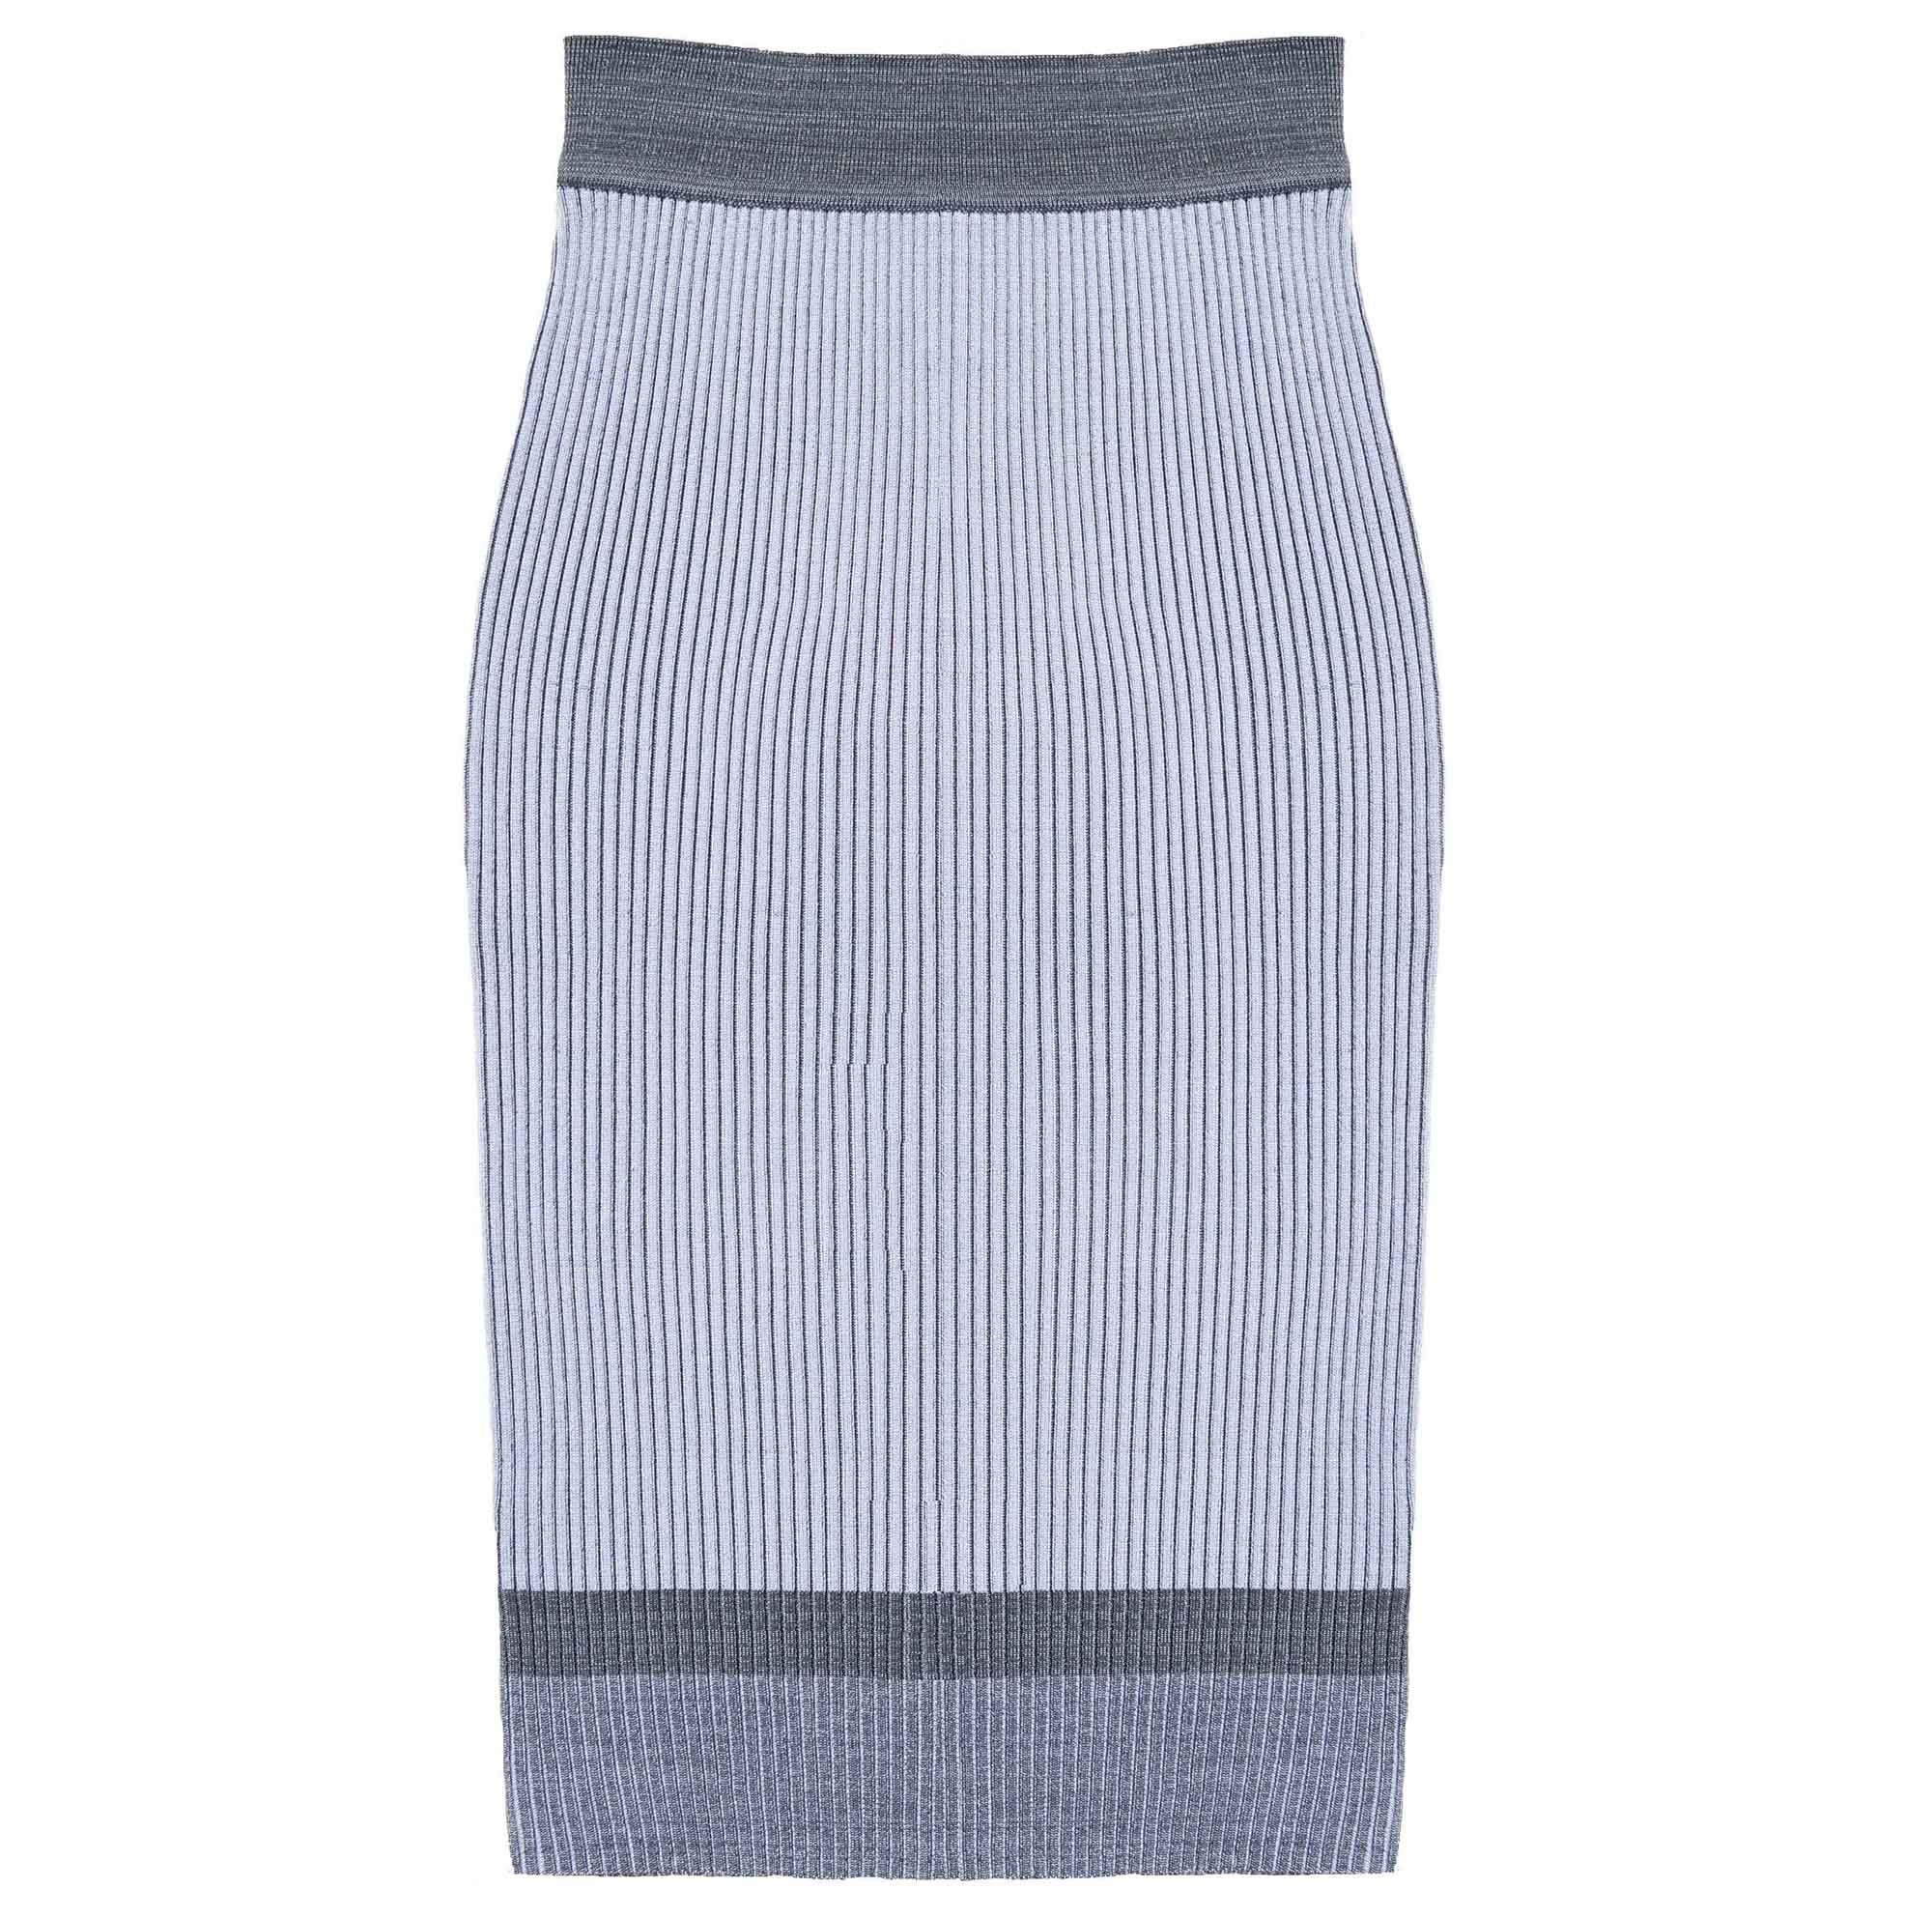 DUA skirt in grey